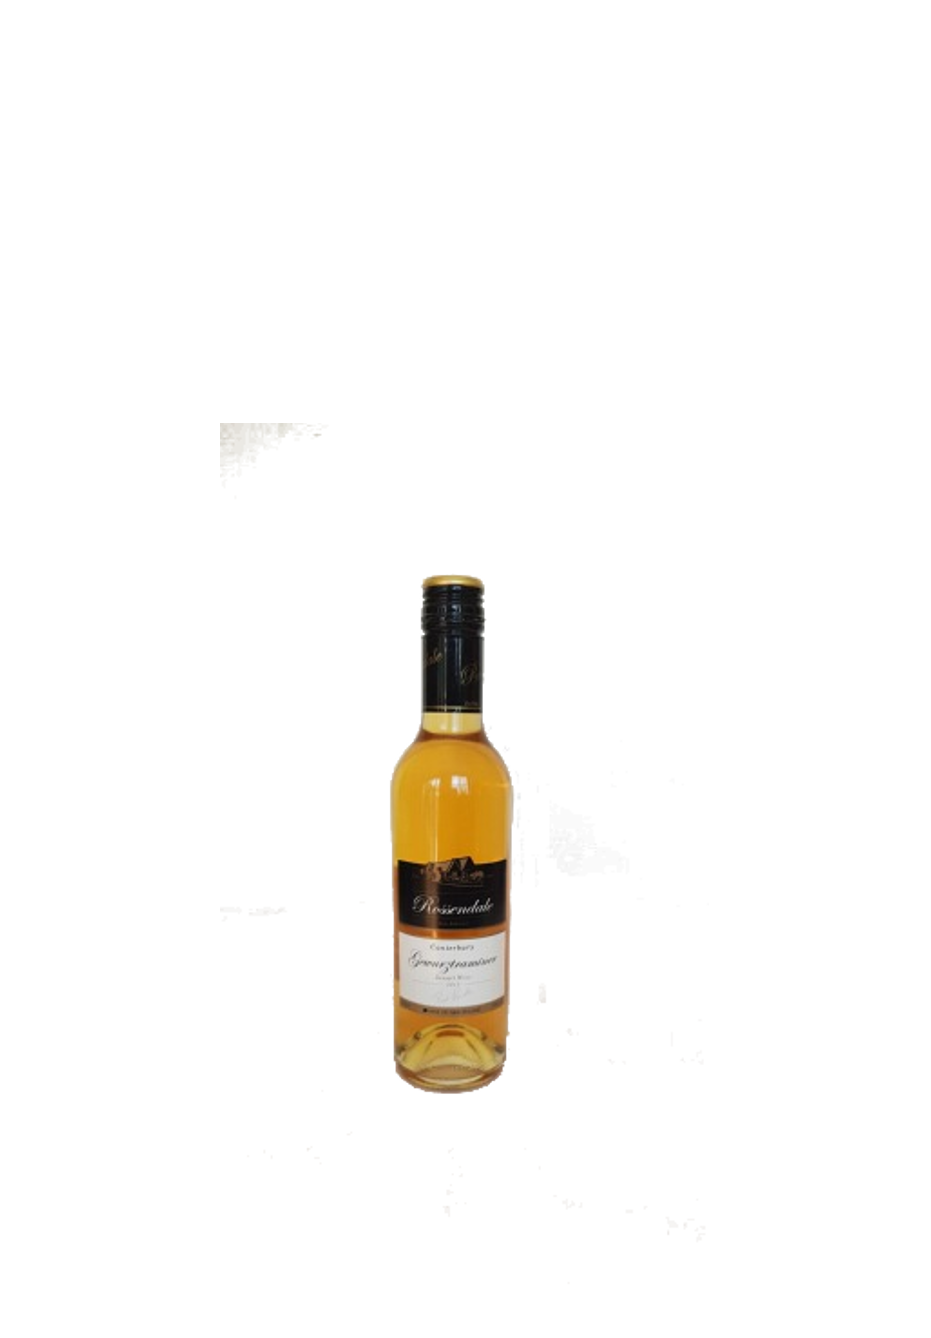 Rossendale Estate Gewurztraminer Dessert Wine 2012 (375 ml bottle)